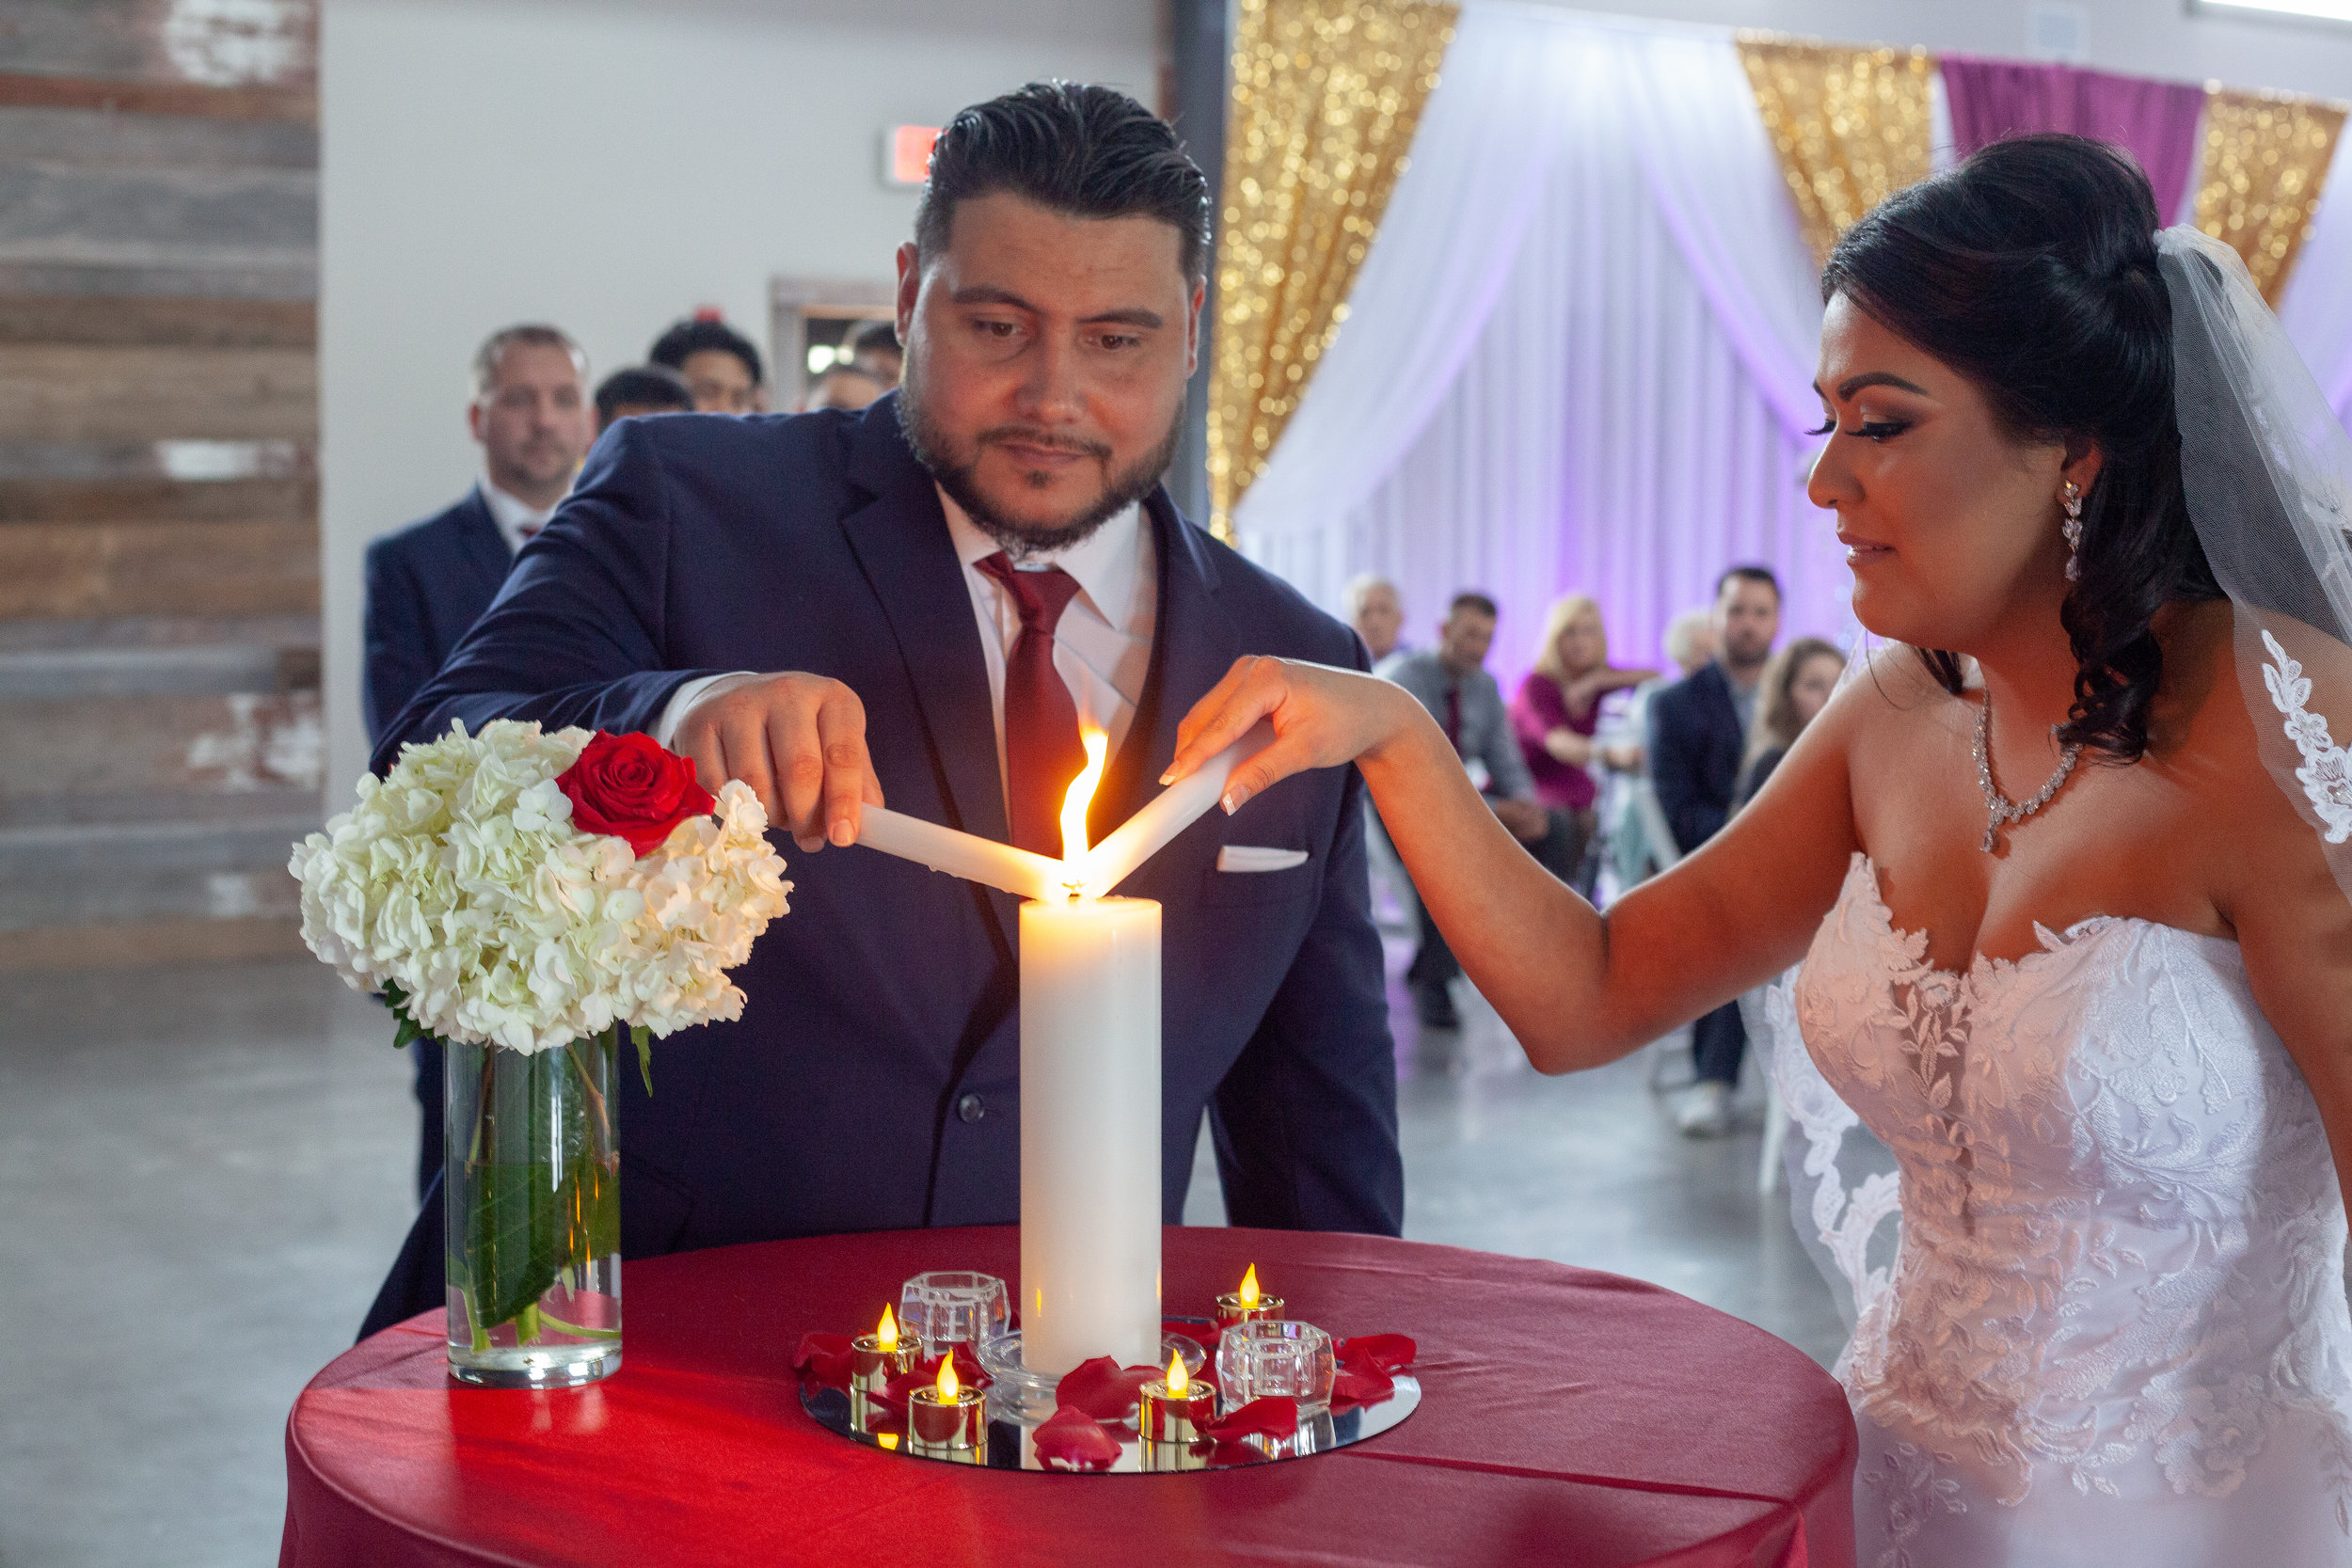 lighting of the candle samoan wedding mexican culture wedding .jpg